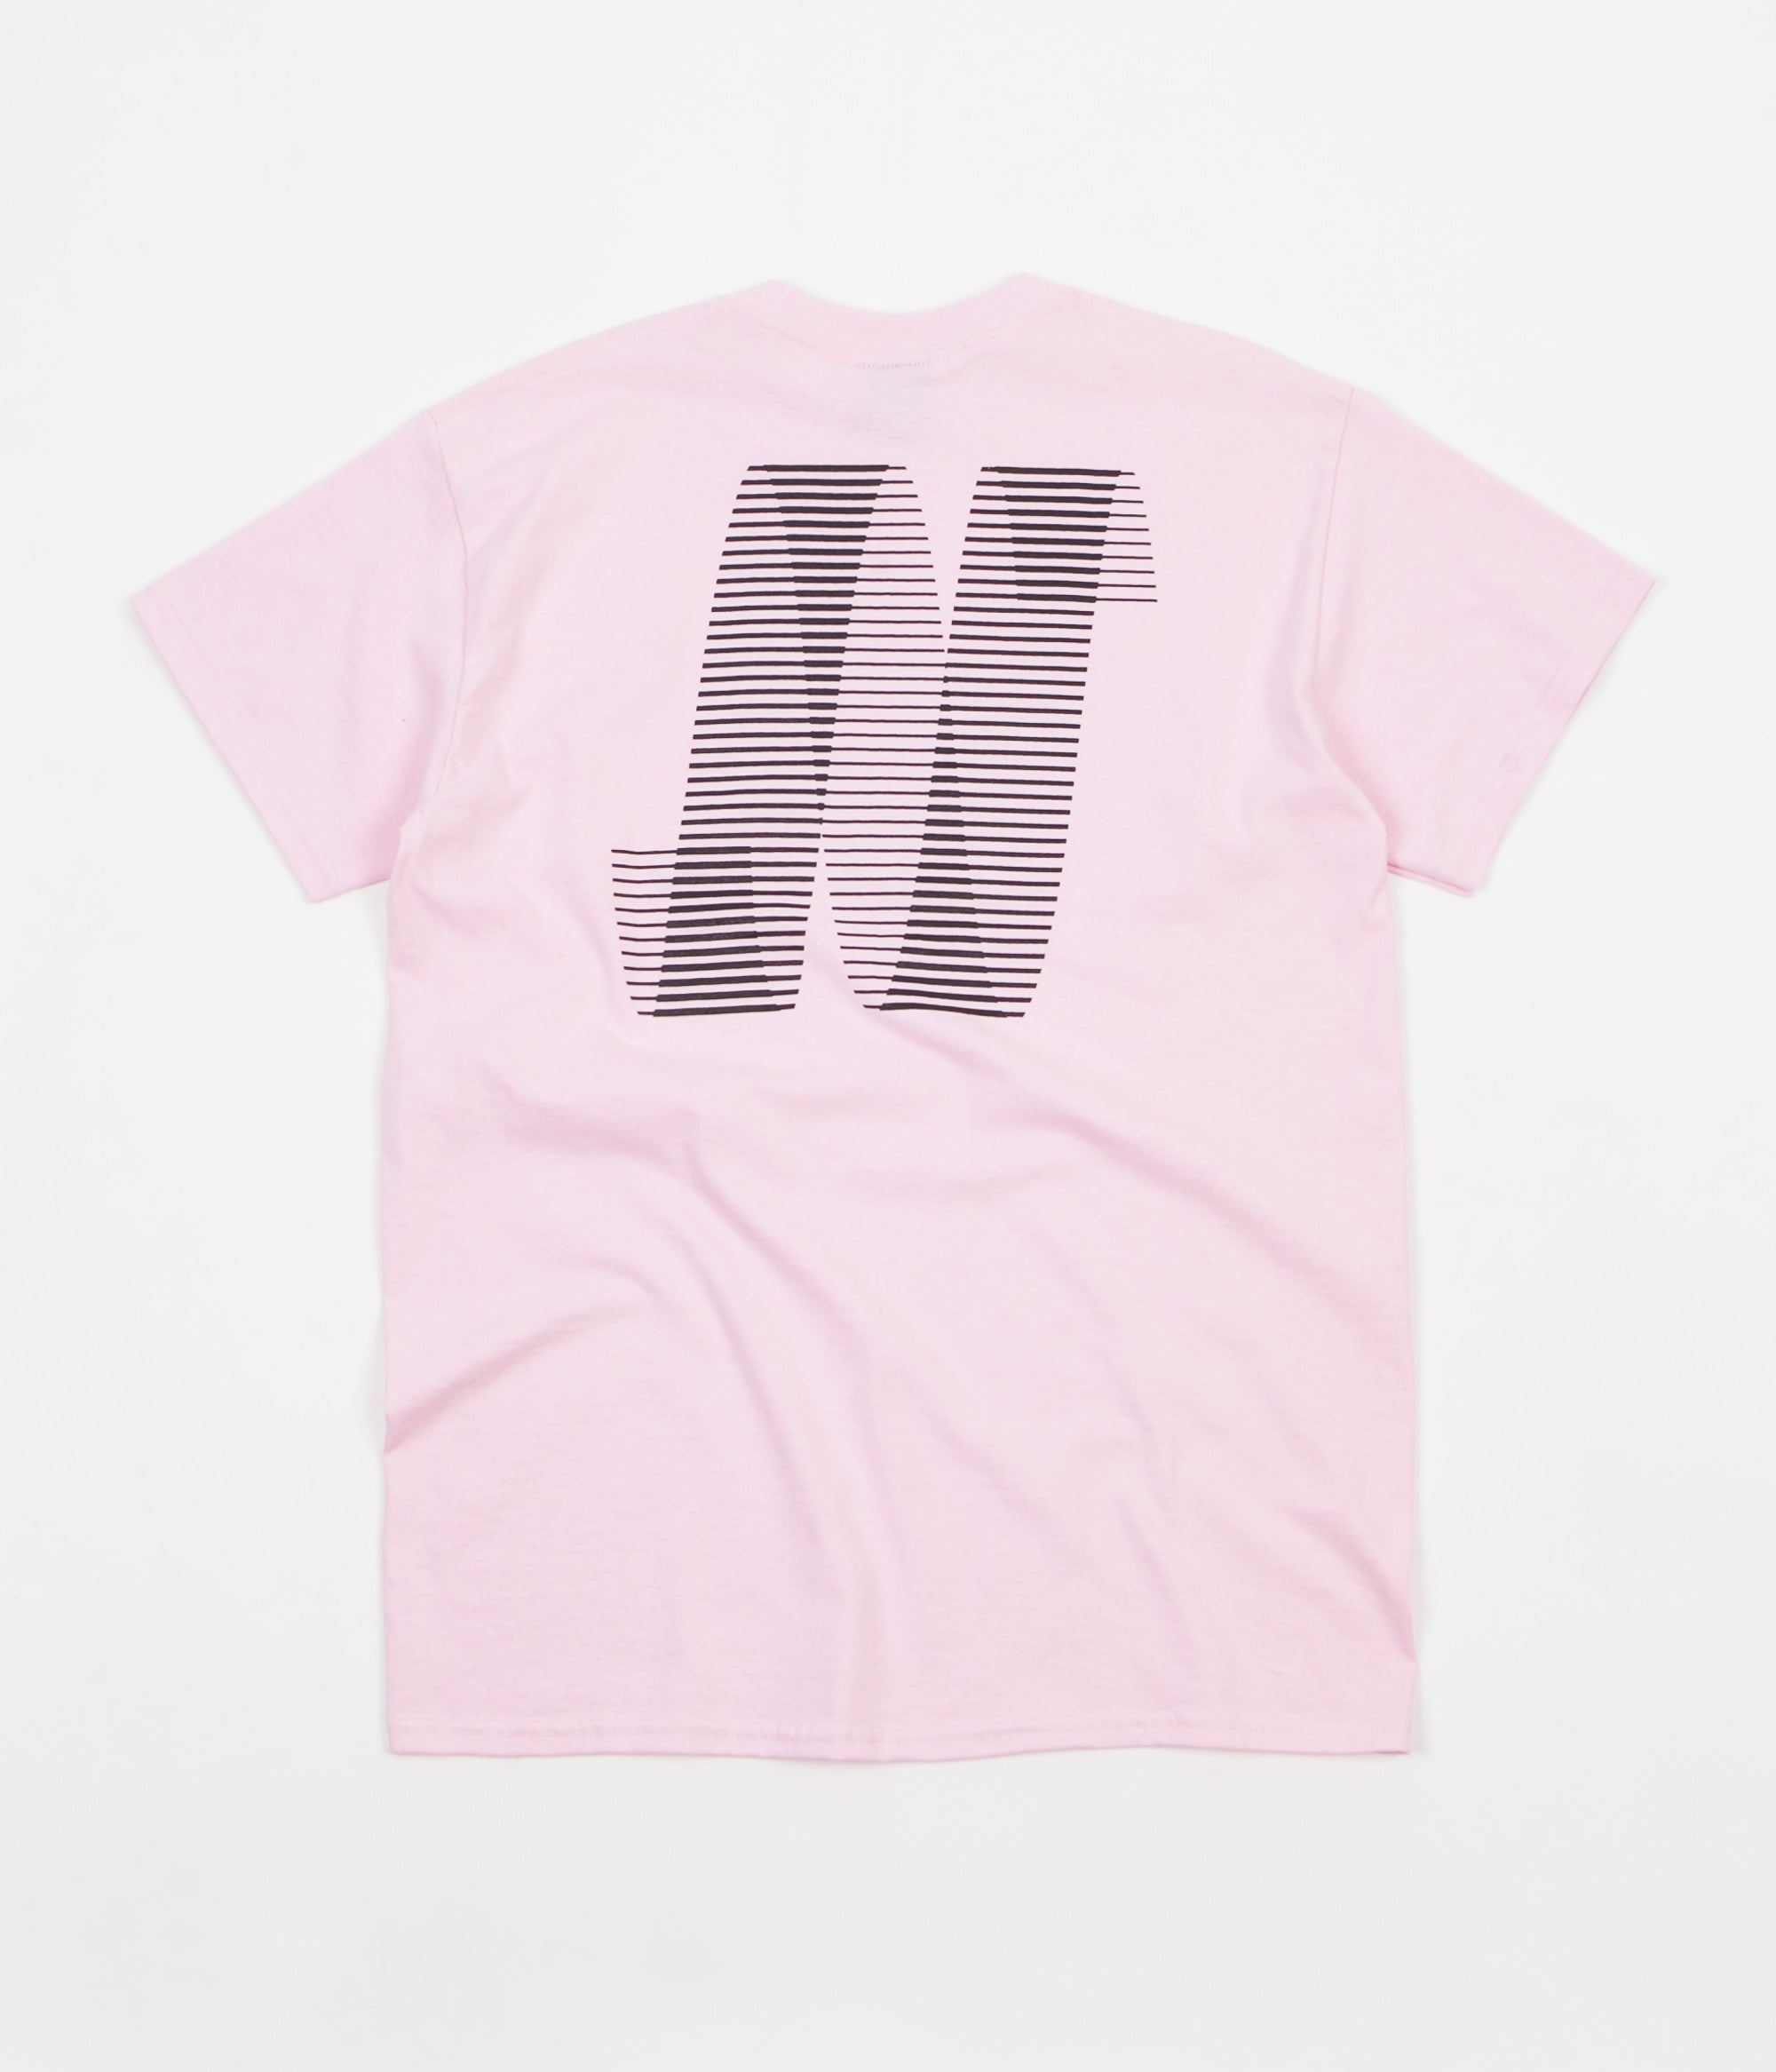 North Skateboard Magazine N Logo T-Shirt - Light Pink / Black